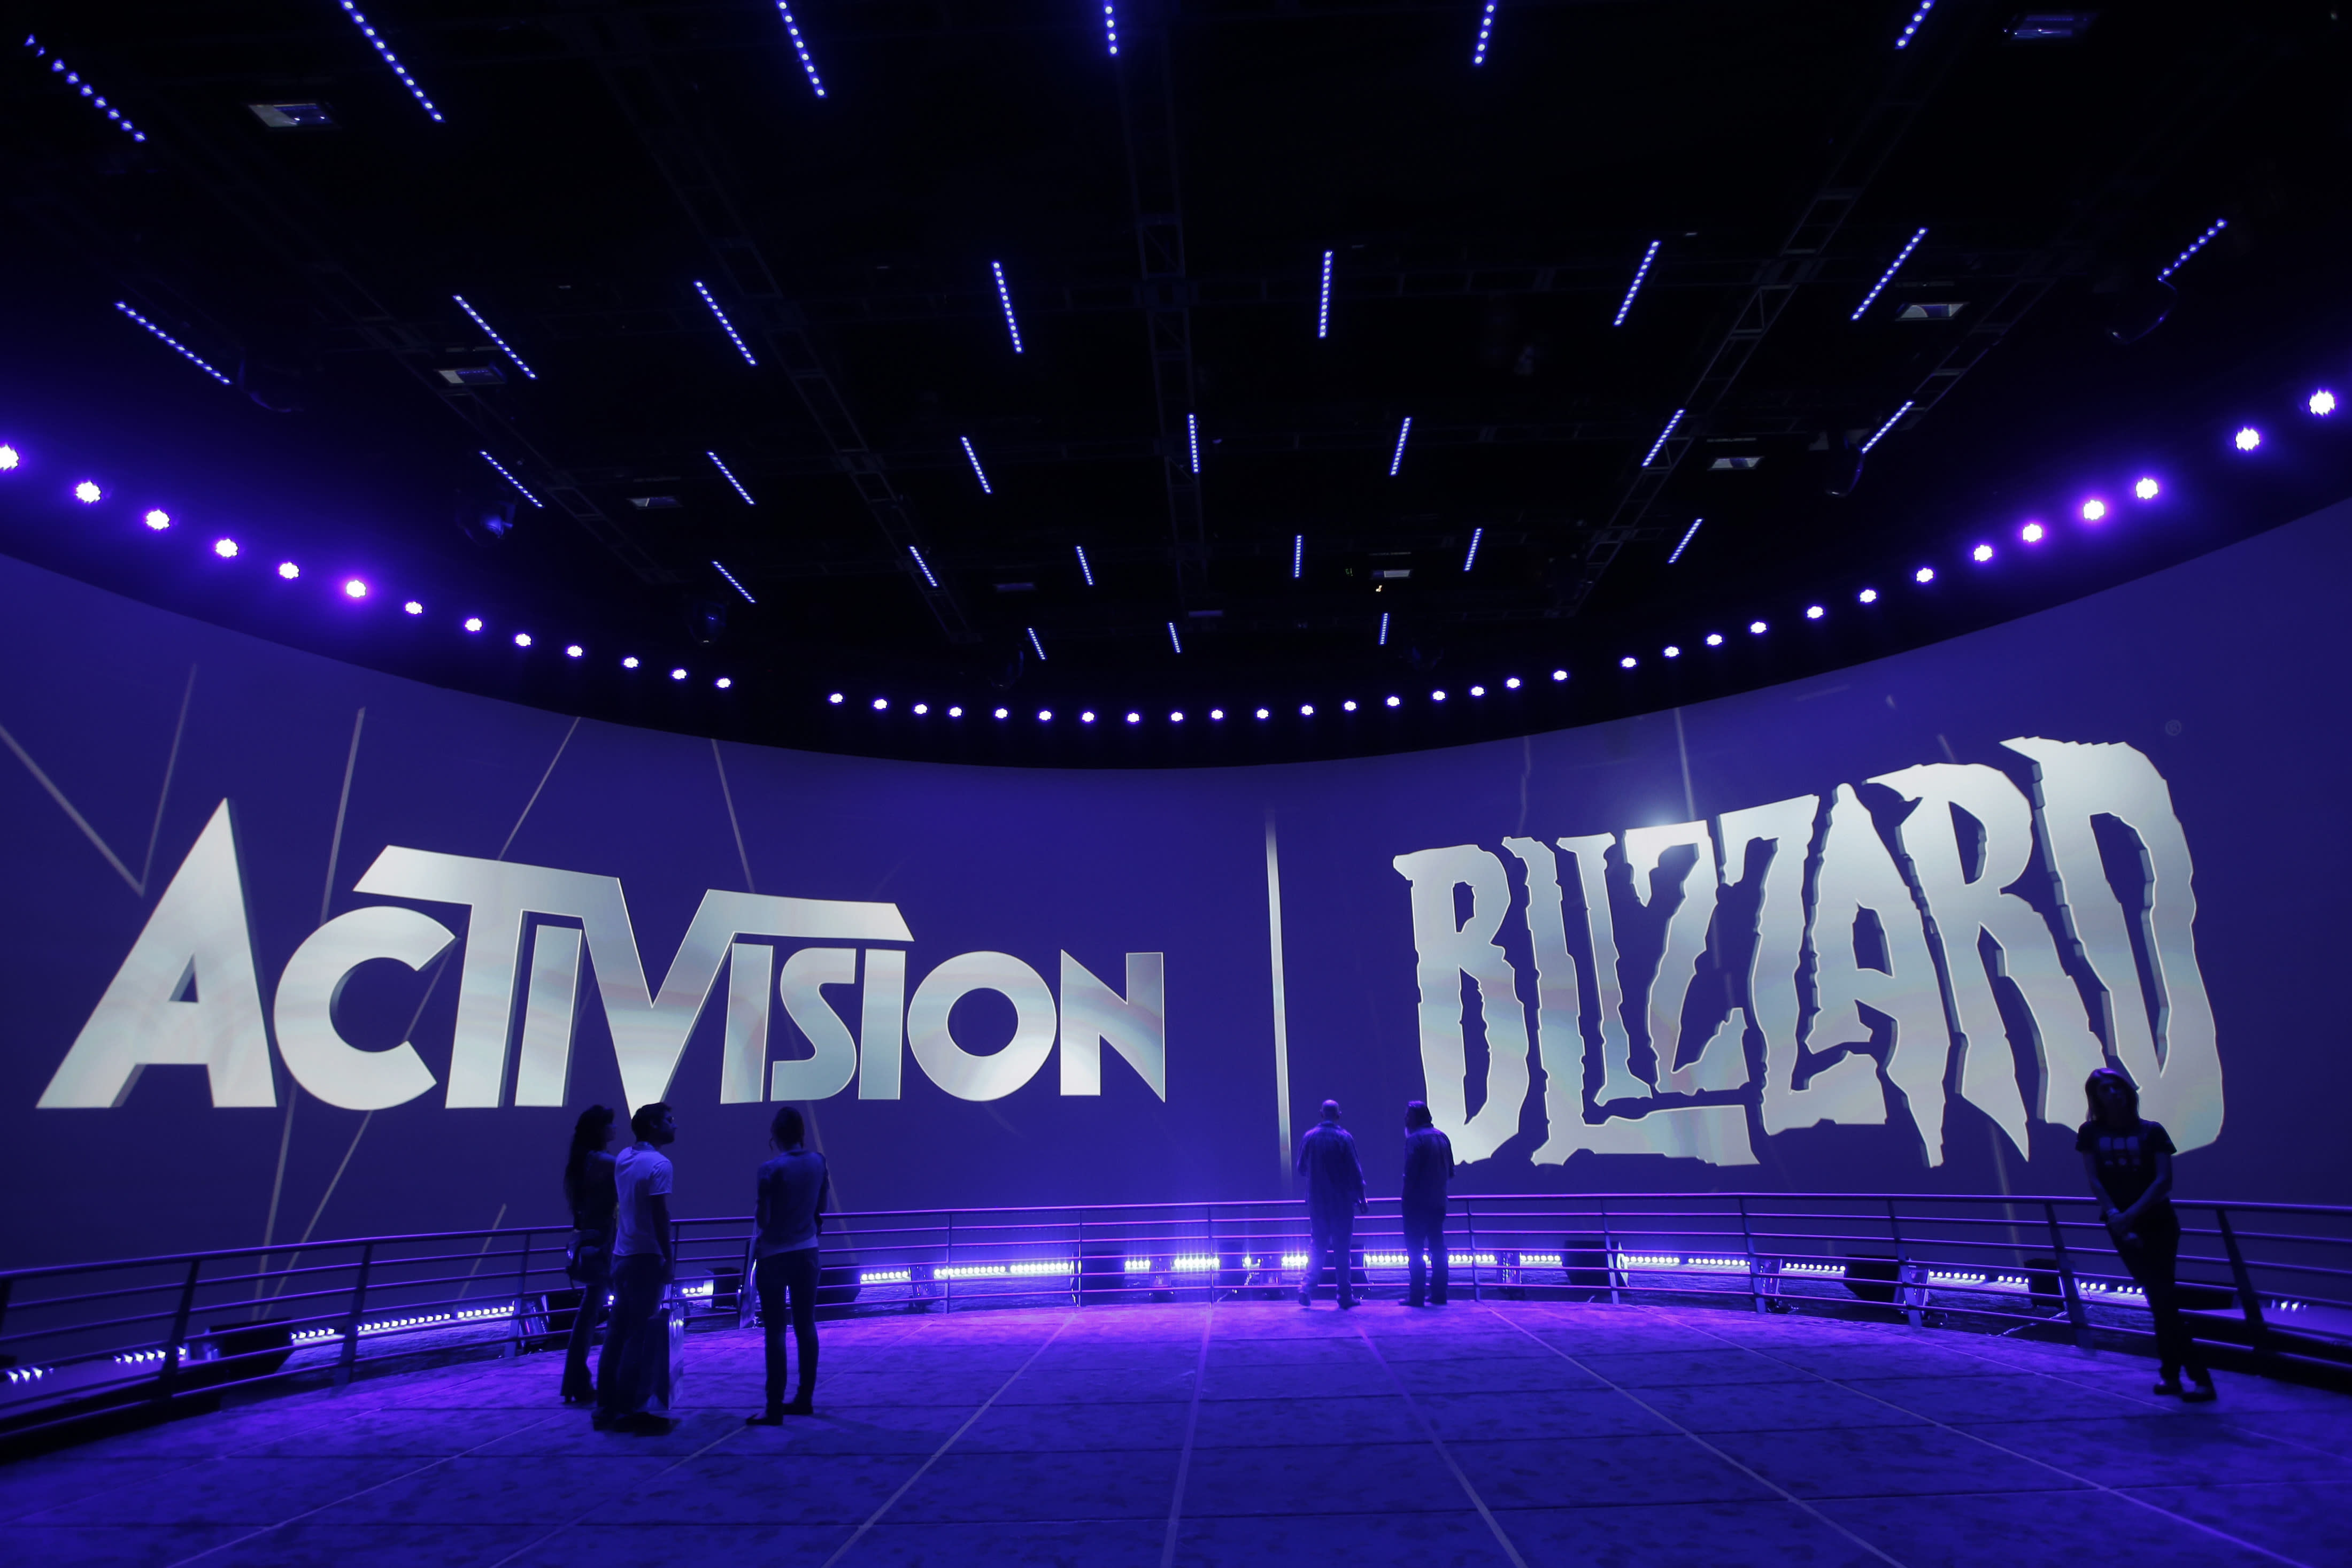 Activision Blizzard reports 21% growth in net bookings on strong sales amid lockdowns